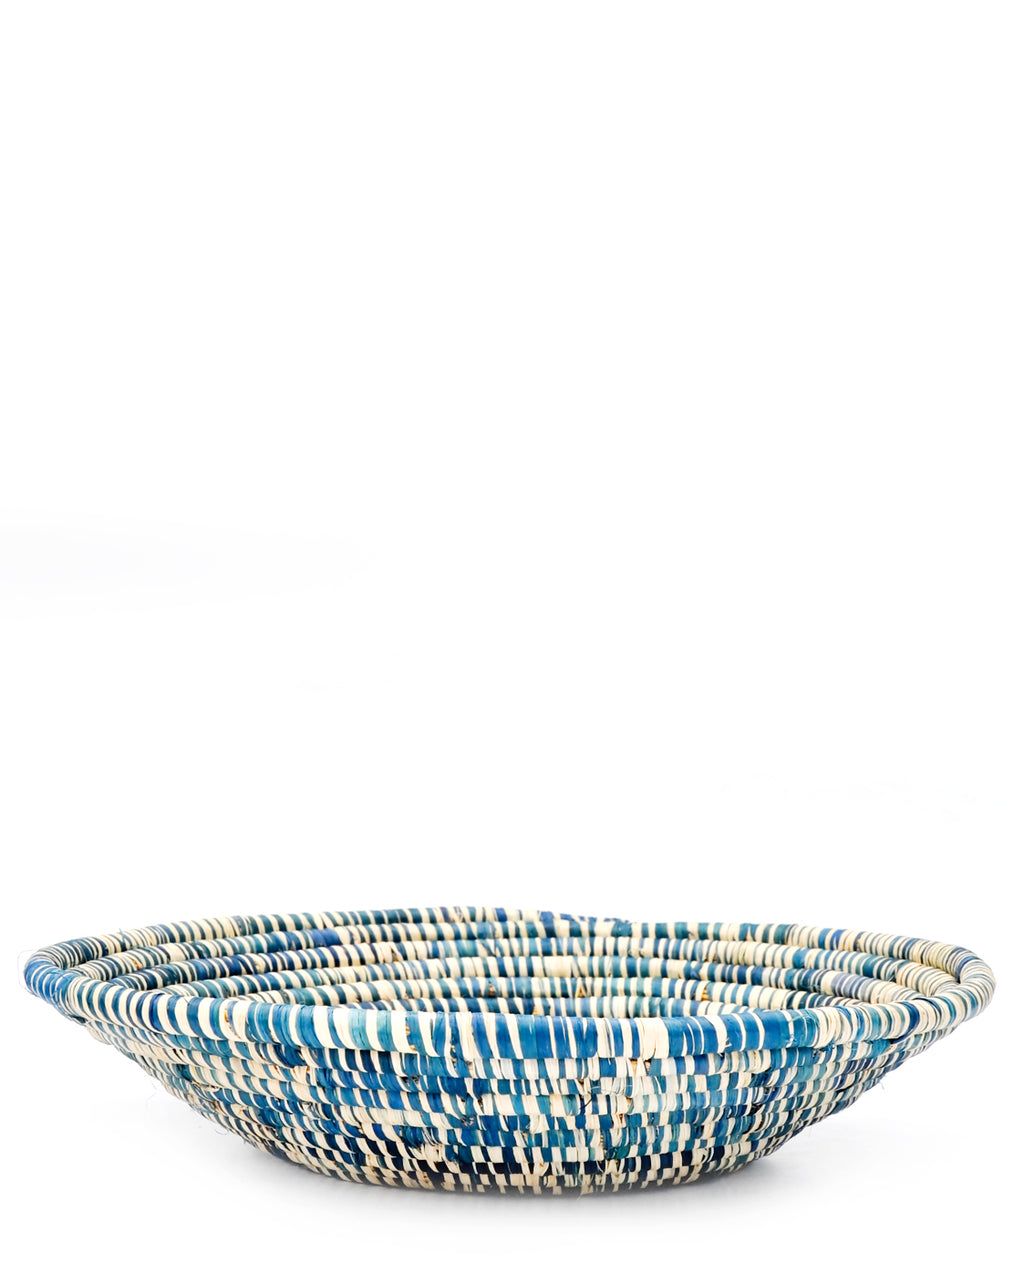 Cerulean / Natural: Raffia Fruit Basket in Cerulean / Natural - LEIF